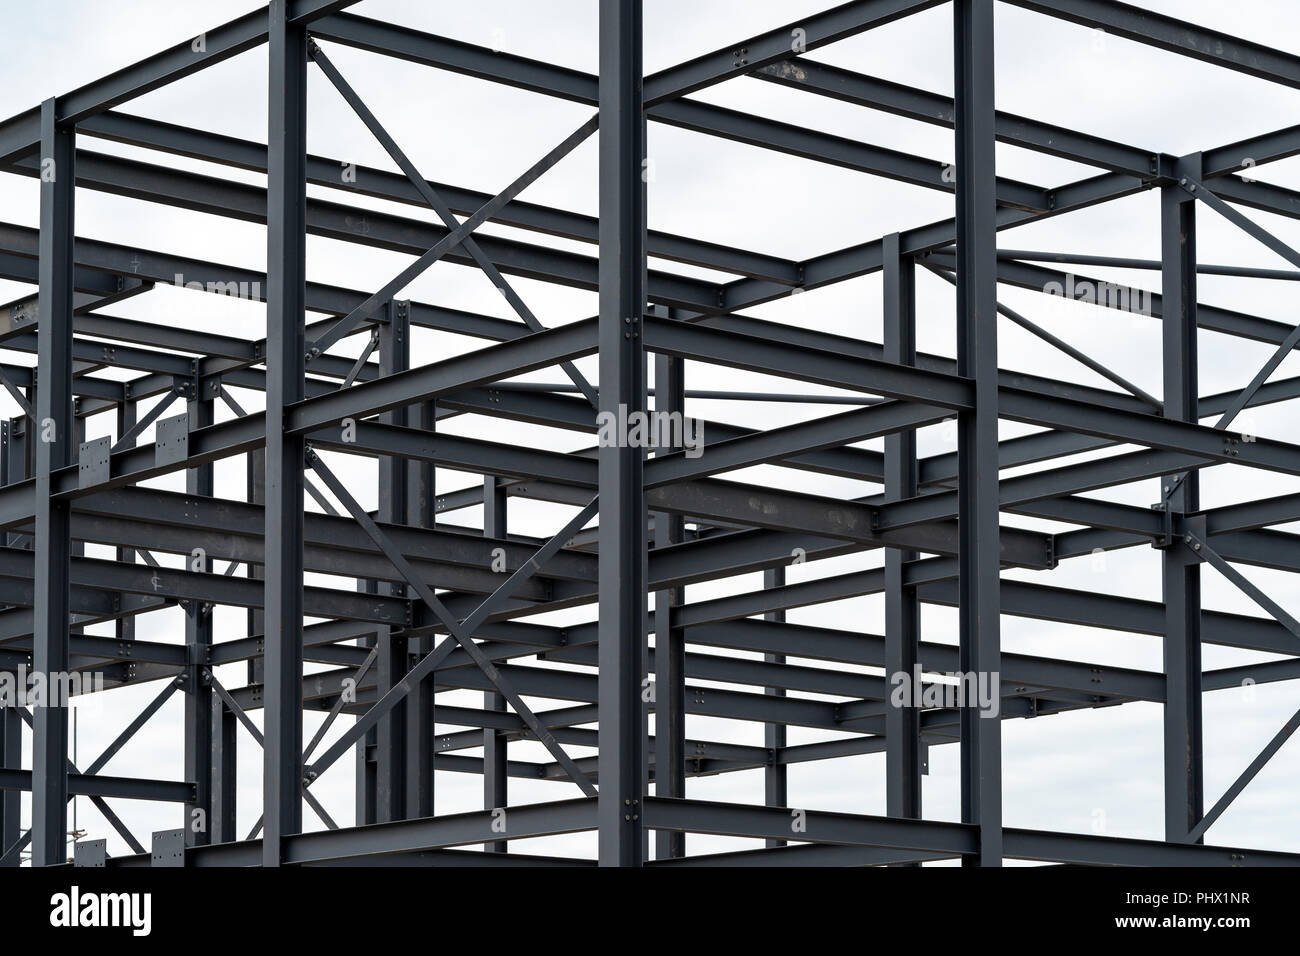 Abstract picture of steelwork against white sky - Stock Image